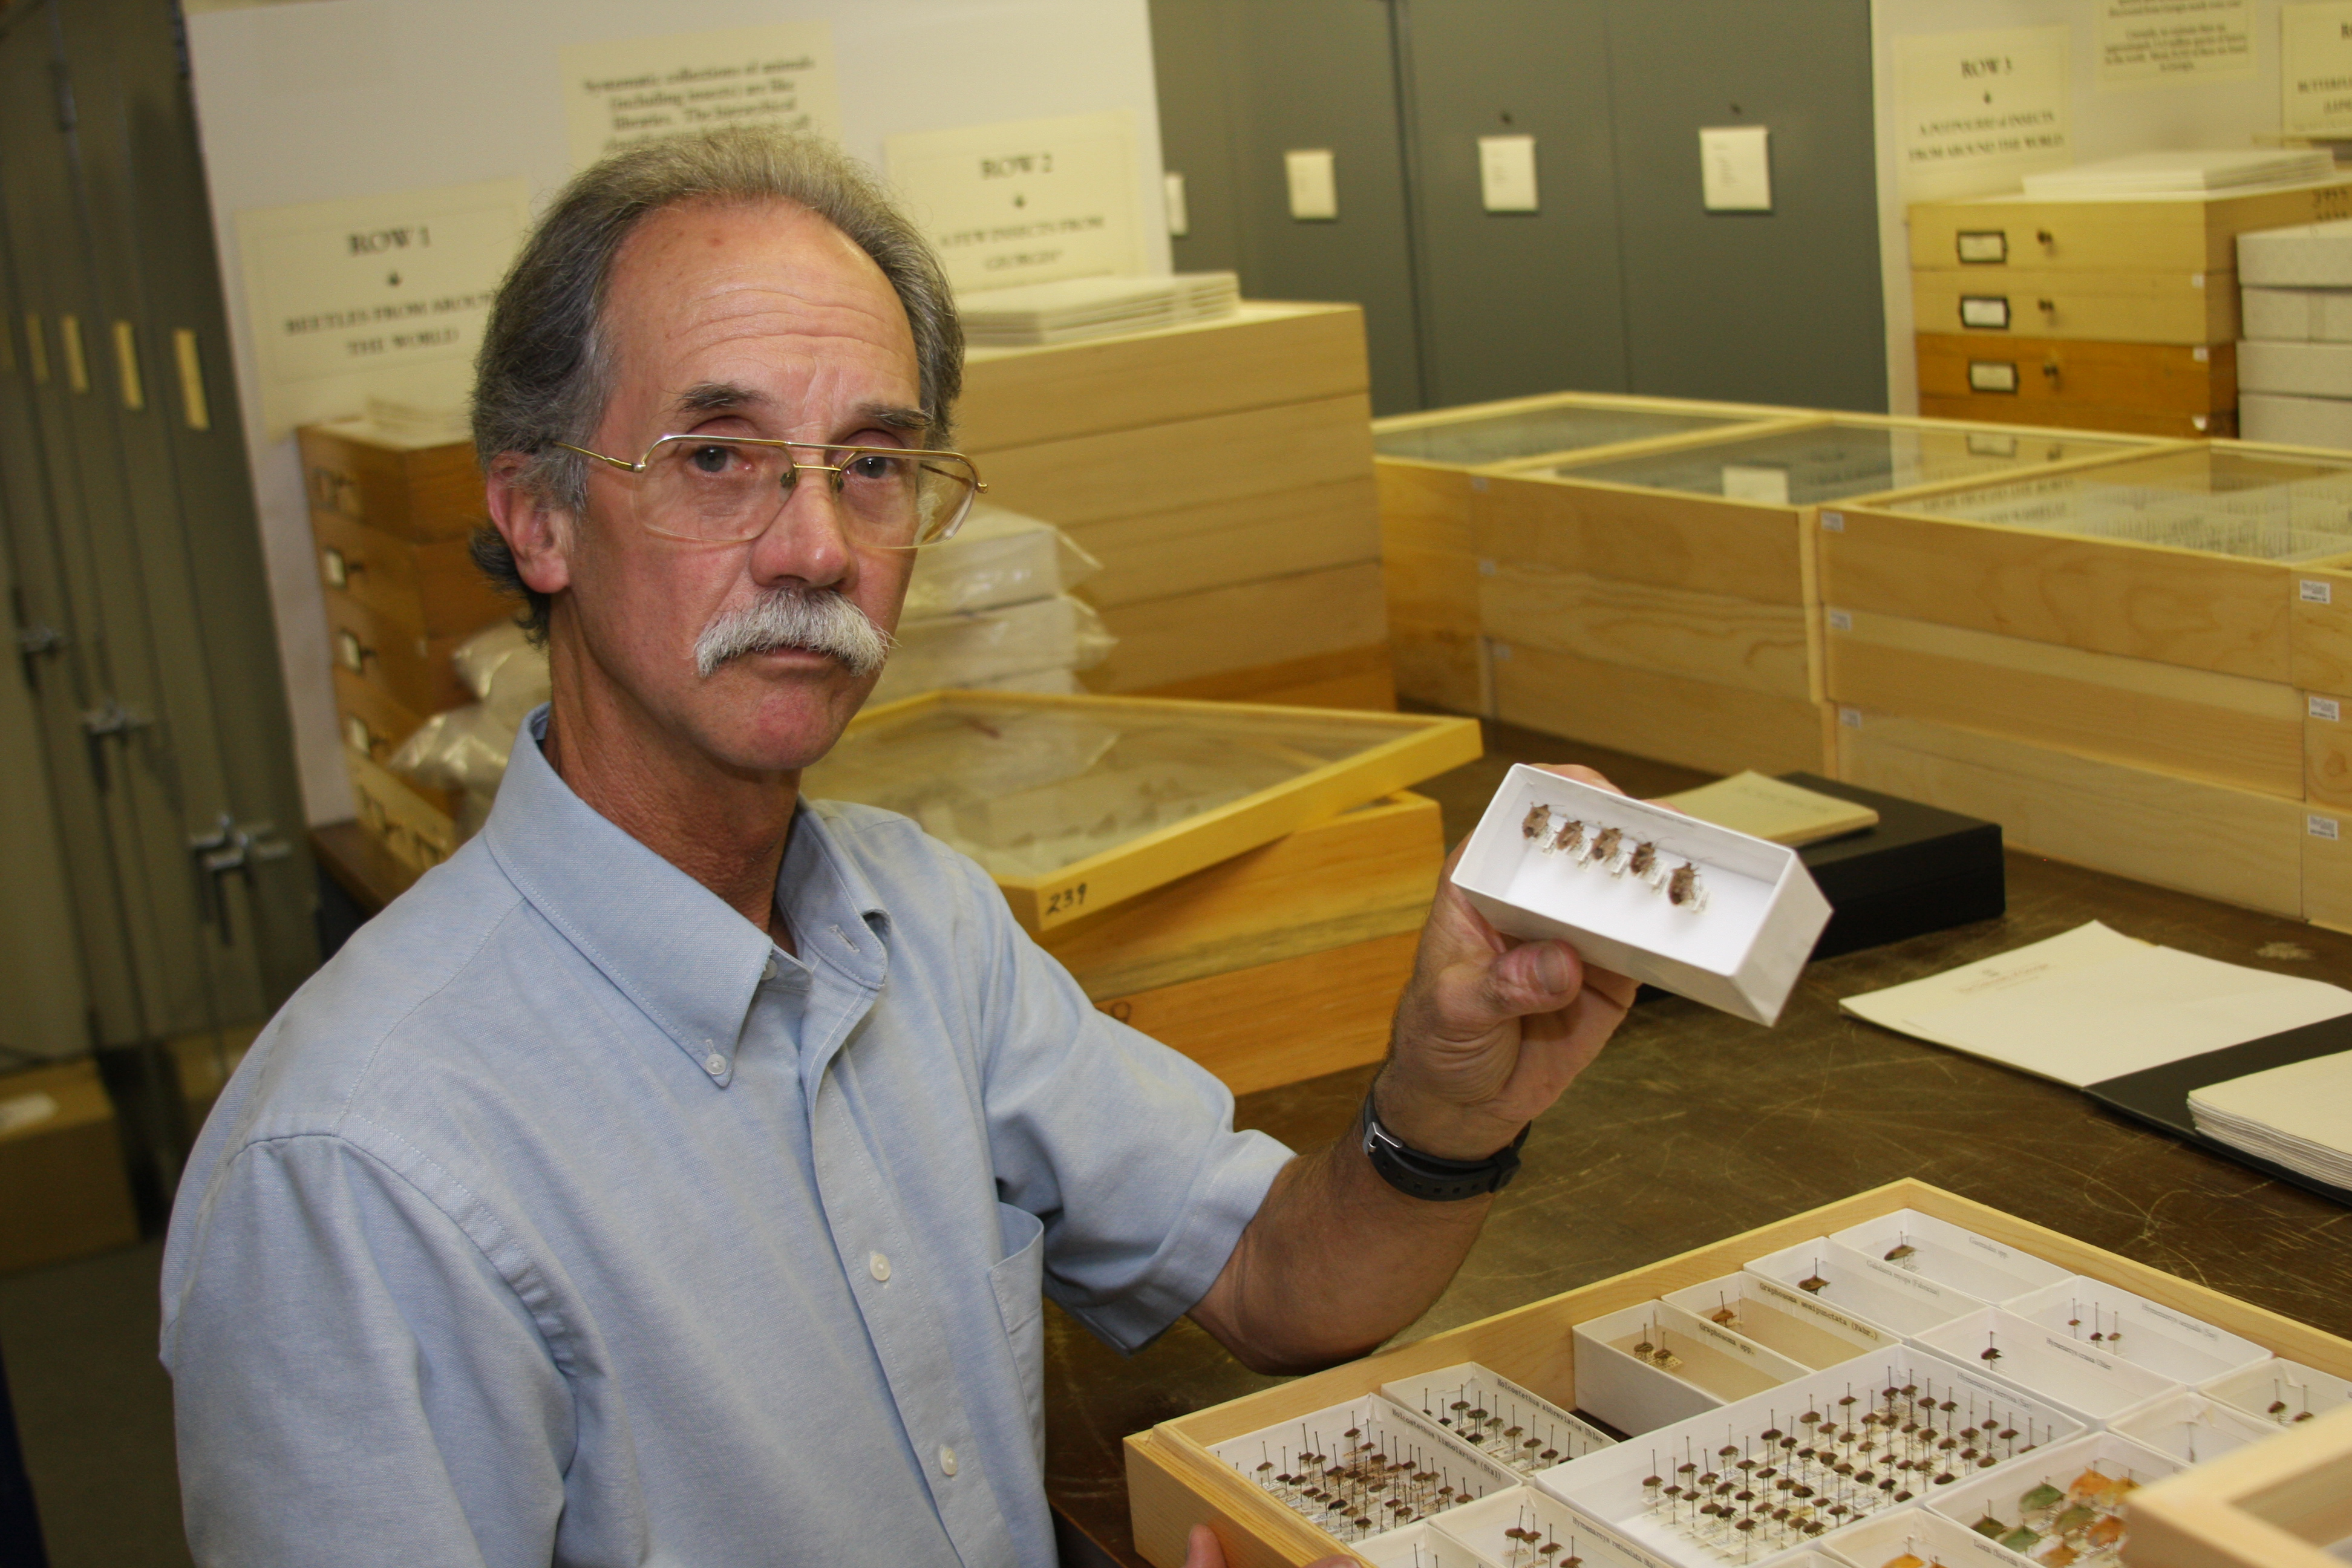 Rick Hoebeke, curator for the insect collection at the Georgia Museum of Natural History, identified the first non-native invasive brown marmorated stink bug in the U.S. in 2001.